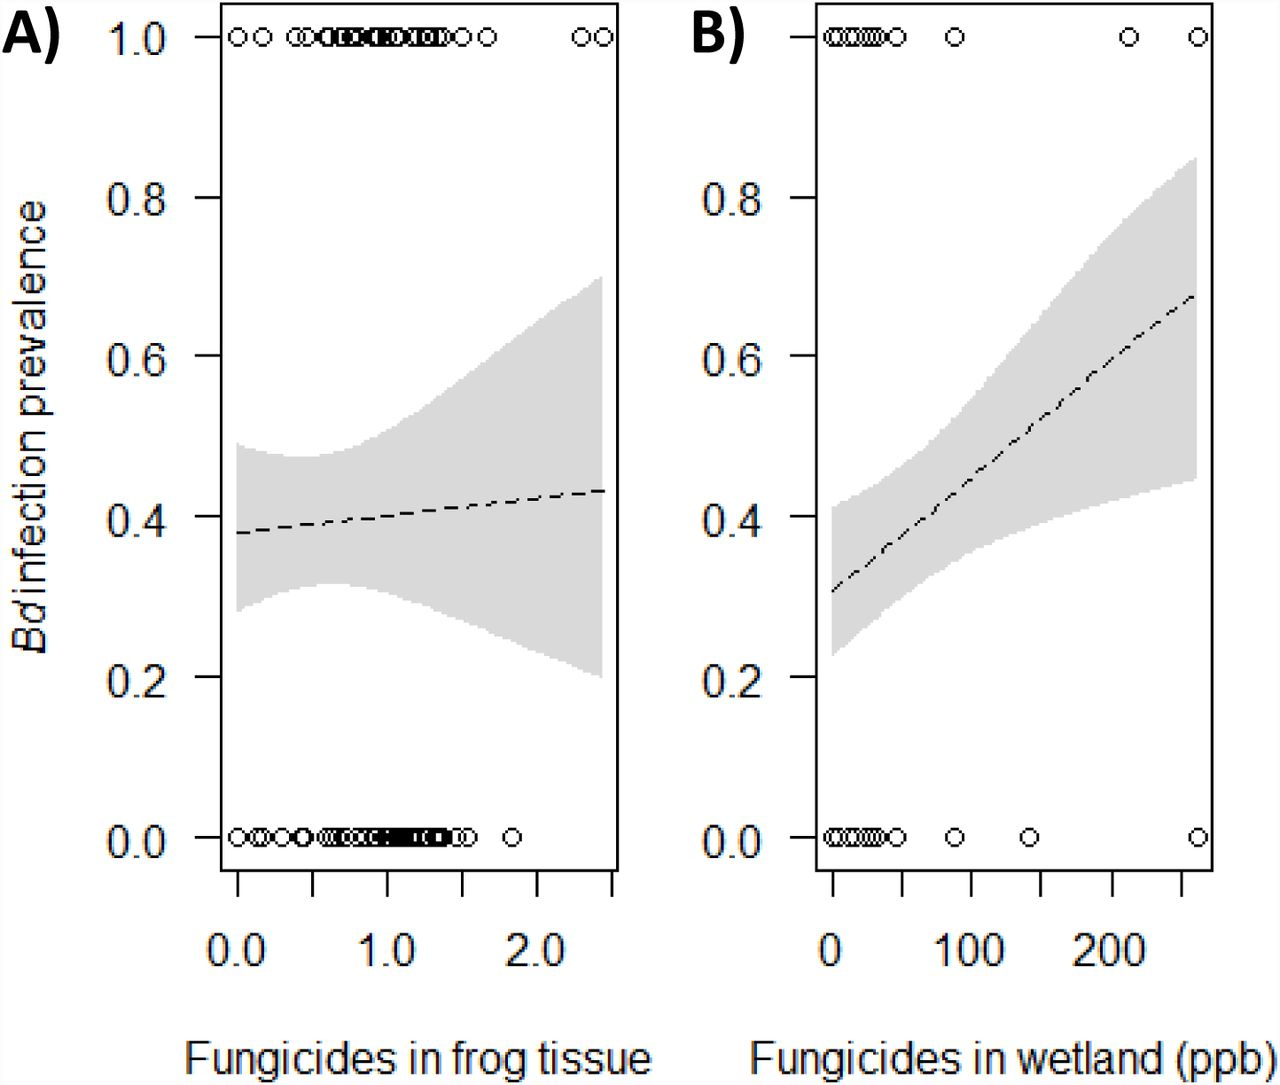 A pesticide paradox: Fungicides indirectly increase fungal